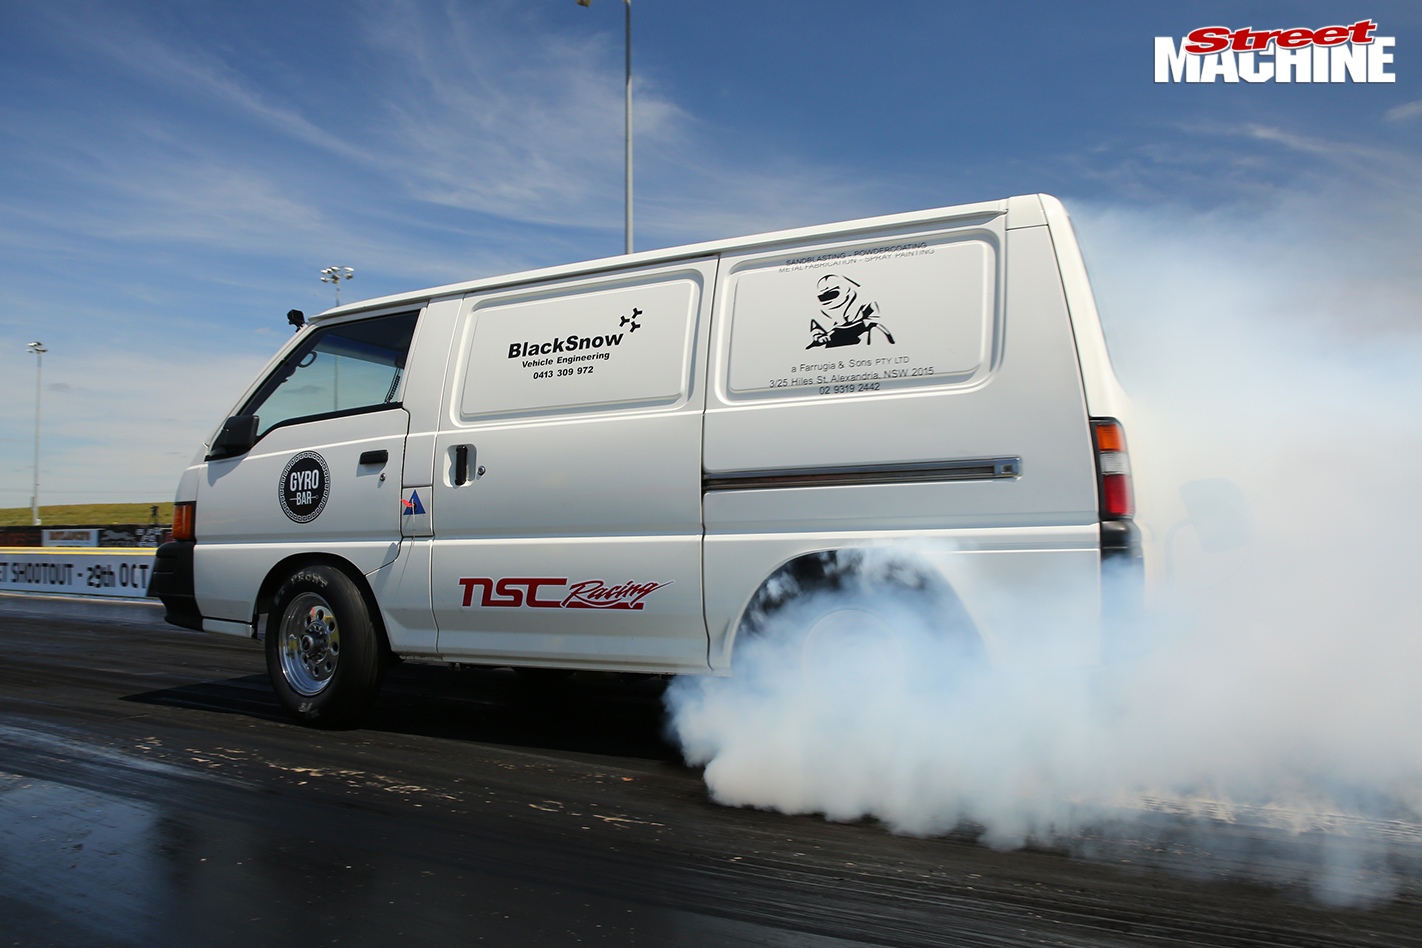 TURBO-LS-FORD-CAPRI-AND-TWIN-TURBO-LS-MITSUBISHI-EXPRESS-VAN-AT-DRAG-CHALLENGE-van -tyre